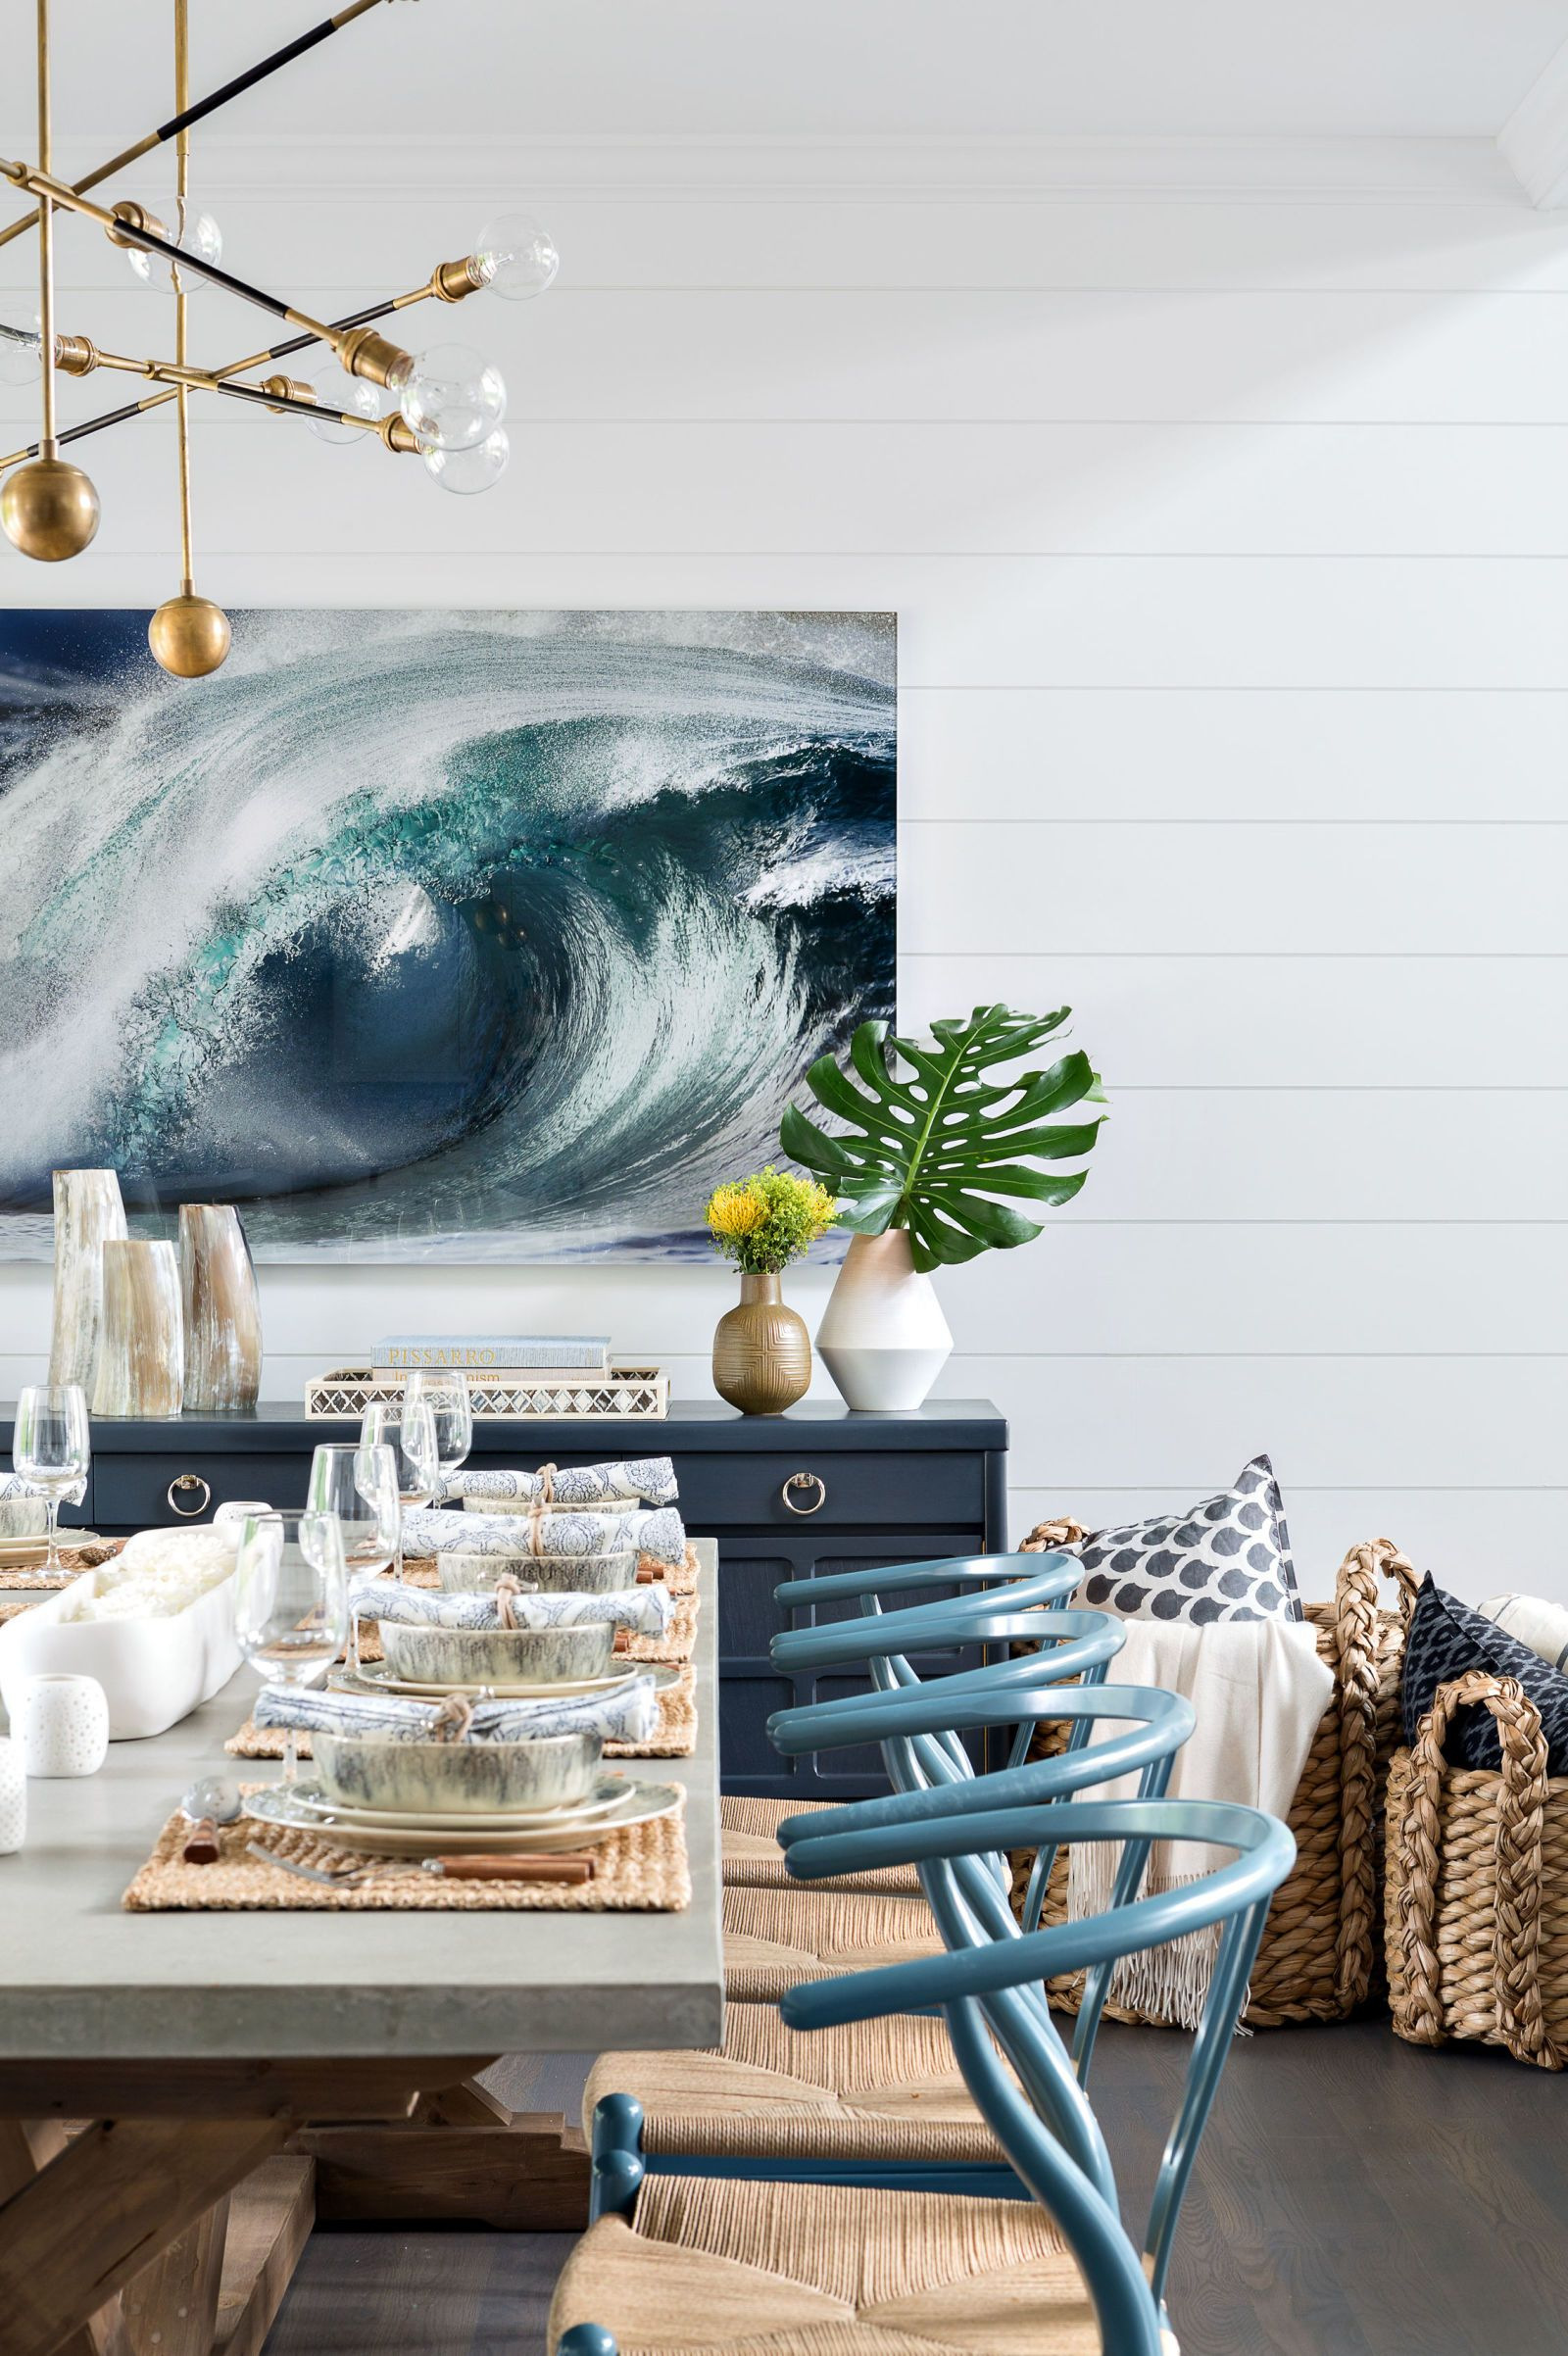 HOUSE TOUR: A Bland Summer Home Is Transformed Into A